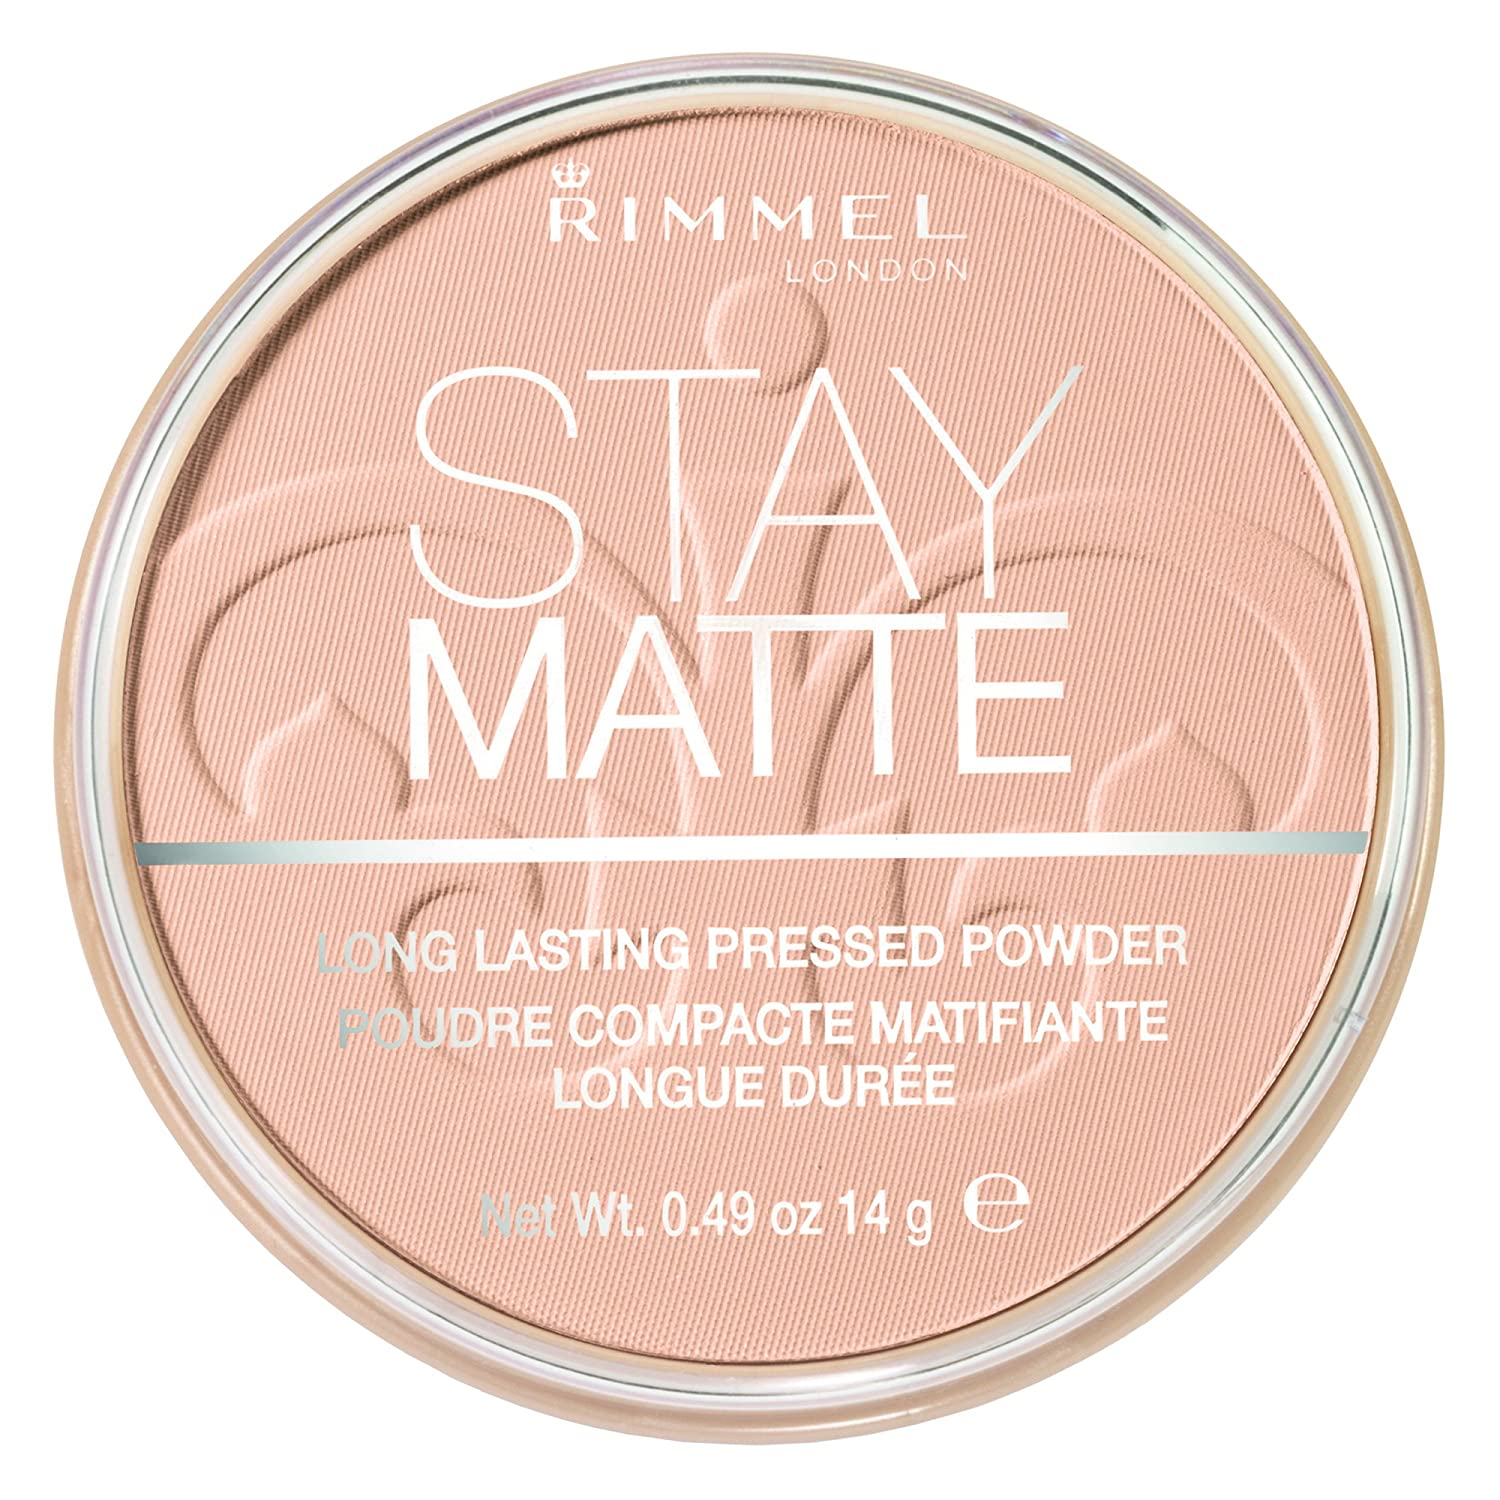 Rimmel Nude Collection Kit with Lasting Finish 1000 Kisses Lip Liner, Lasting Finish Nude Lipstick, Scandaleyes Waterproof Kohl Kajal Eyeliner and Stay Matte Pressed Powder, Multi Coty Beauty